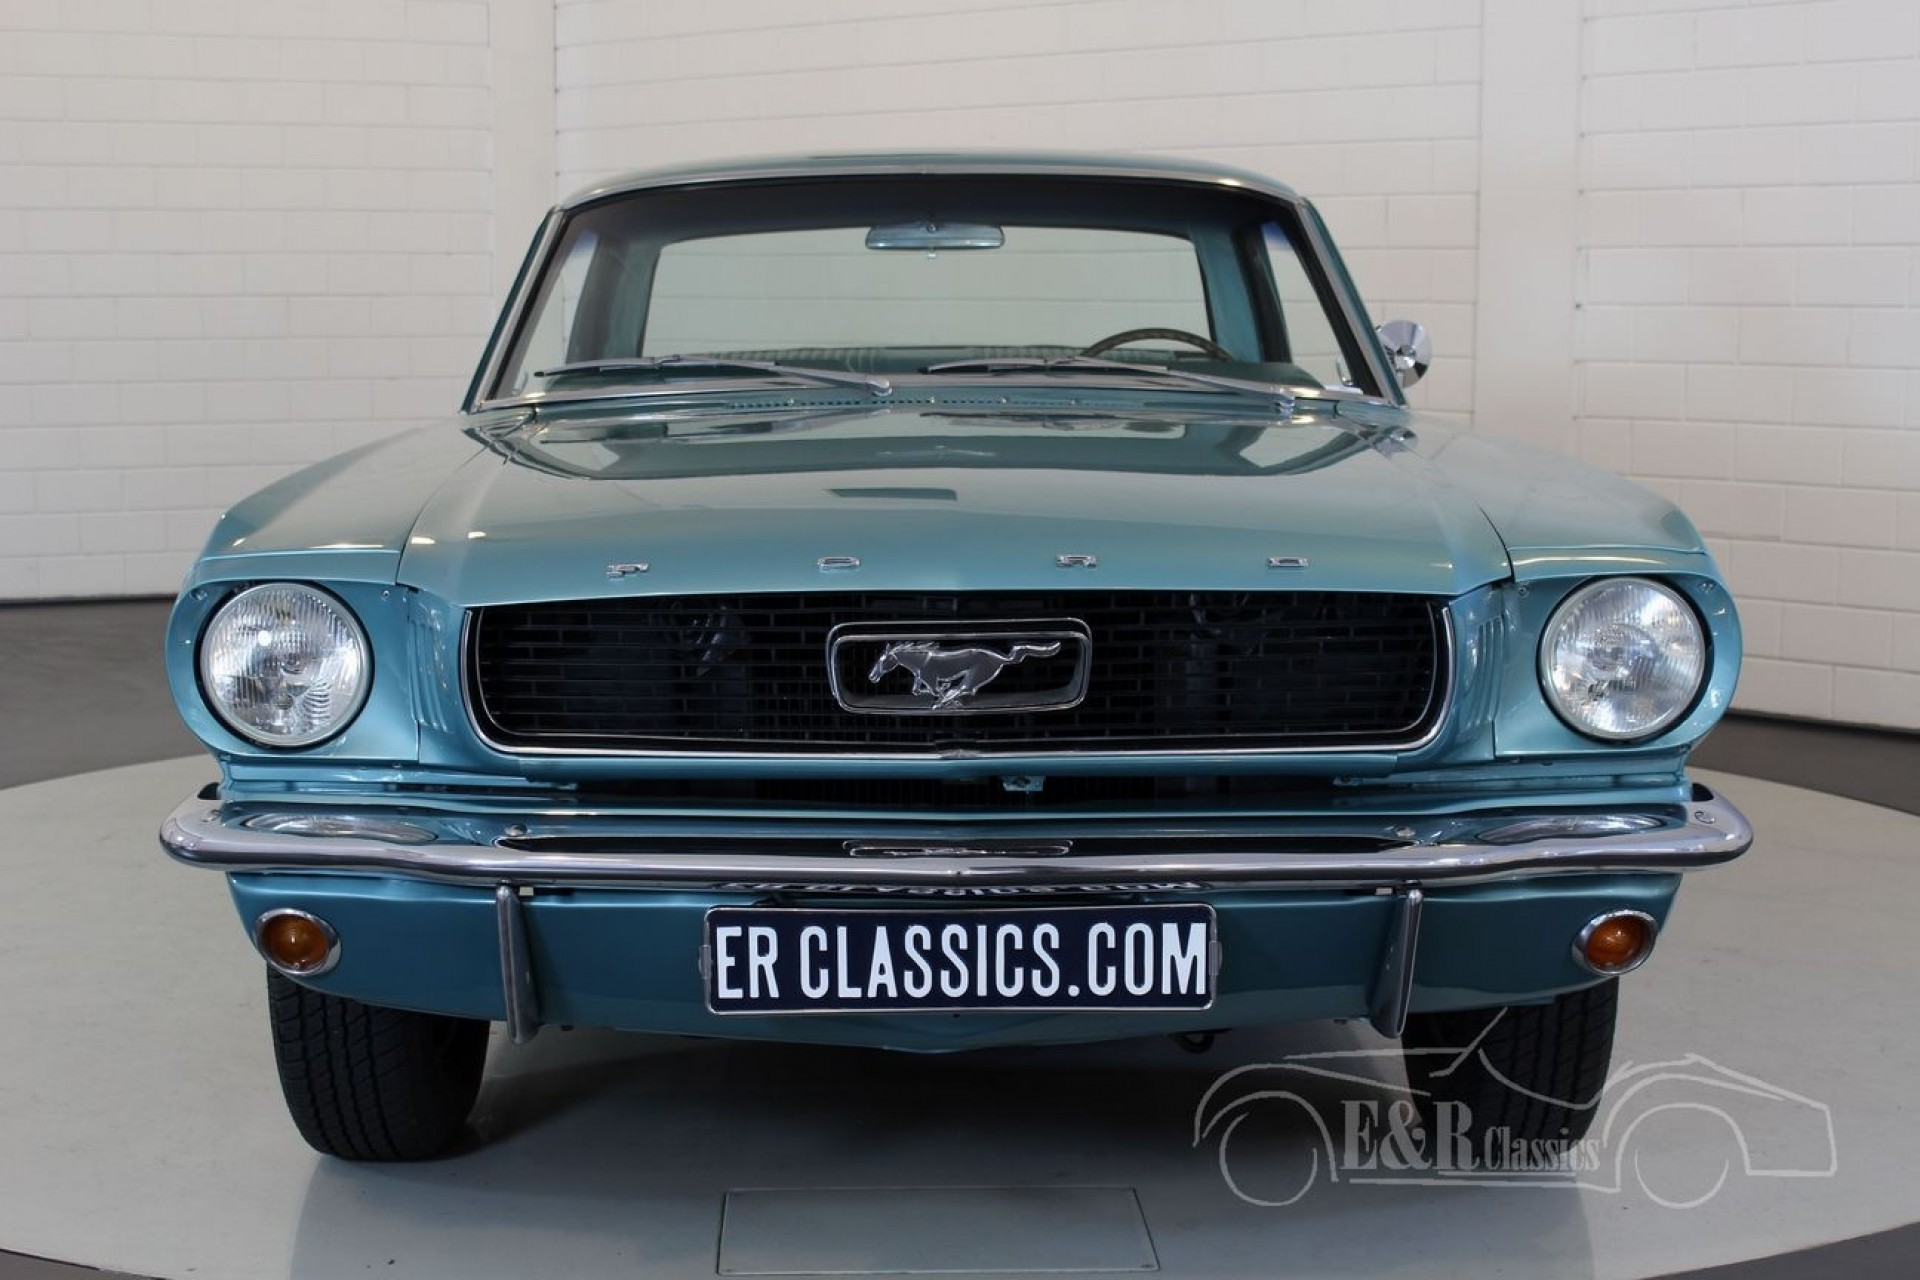 Ford Mustang Coupe C Code V8 1966 zum kauf bei ERclassics